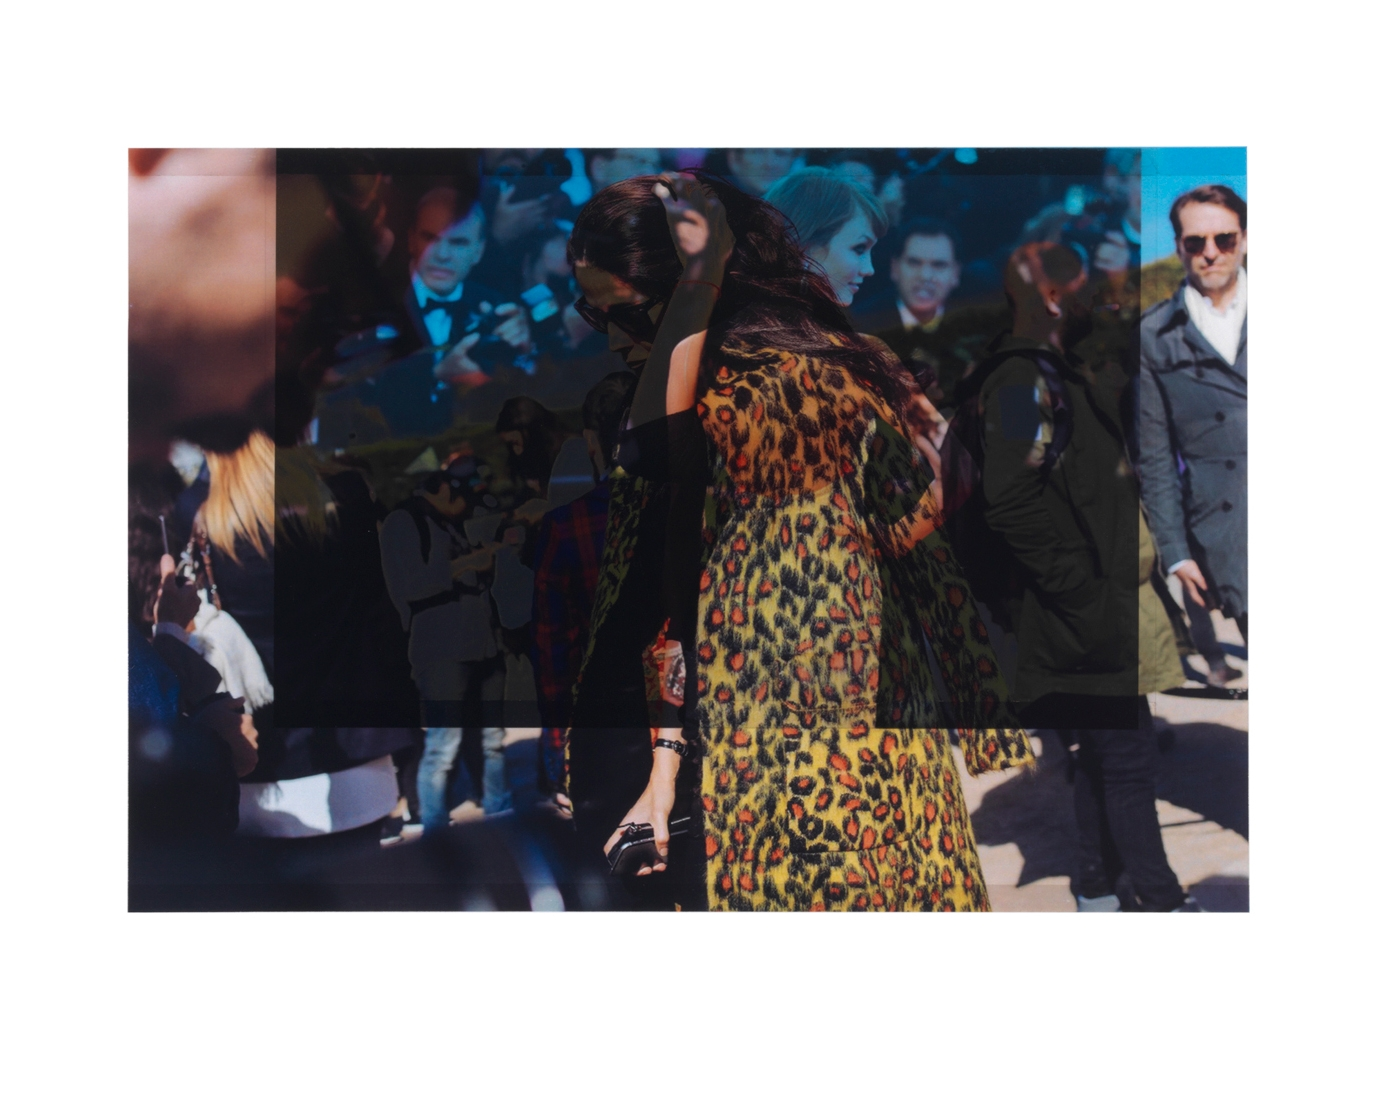 after Barbara Martelo, October 2015 (scene from Fashion Week, Paris) / from style.com, February 2014 (scene from Fashion Week, New York: what should Karlie Kloss do?)    9 1/4 x 10 3/4,  2 inkjet prints on mylar, constructed, one over the other, 2015-16